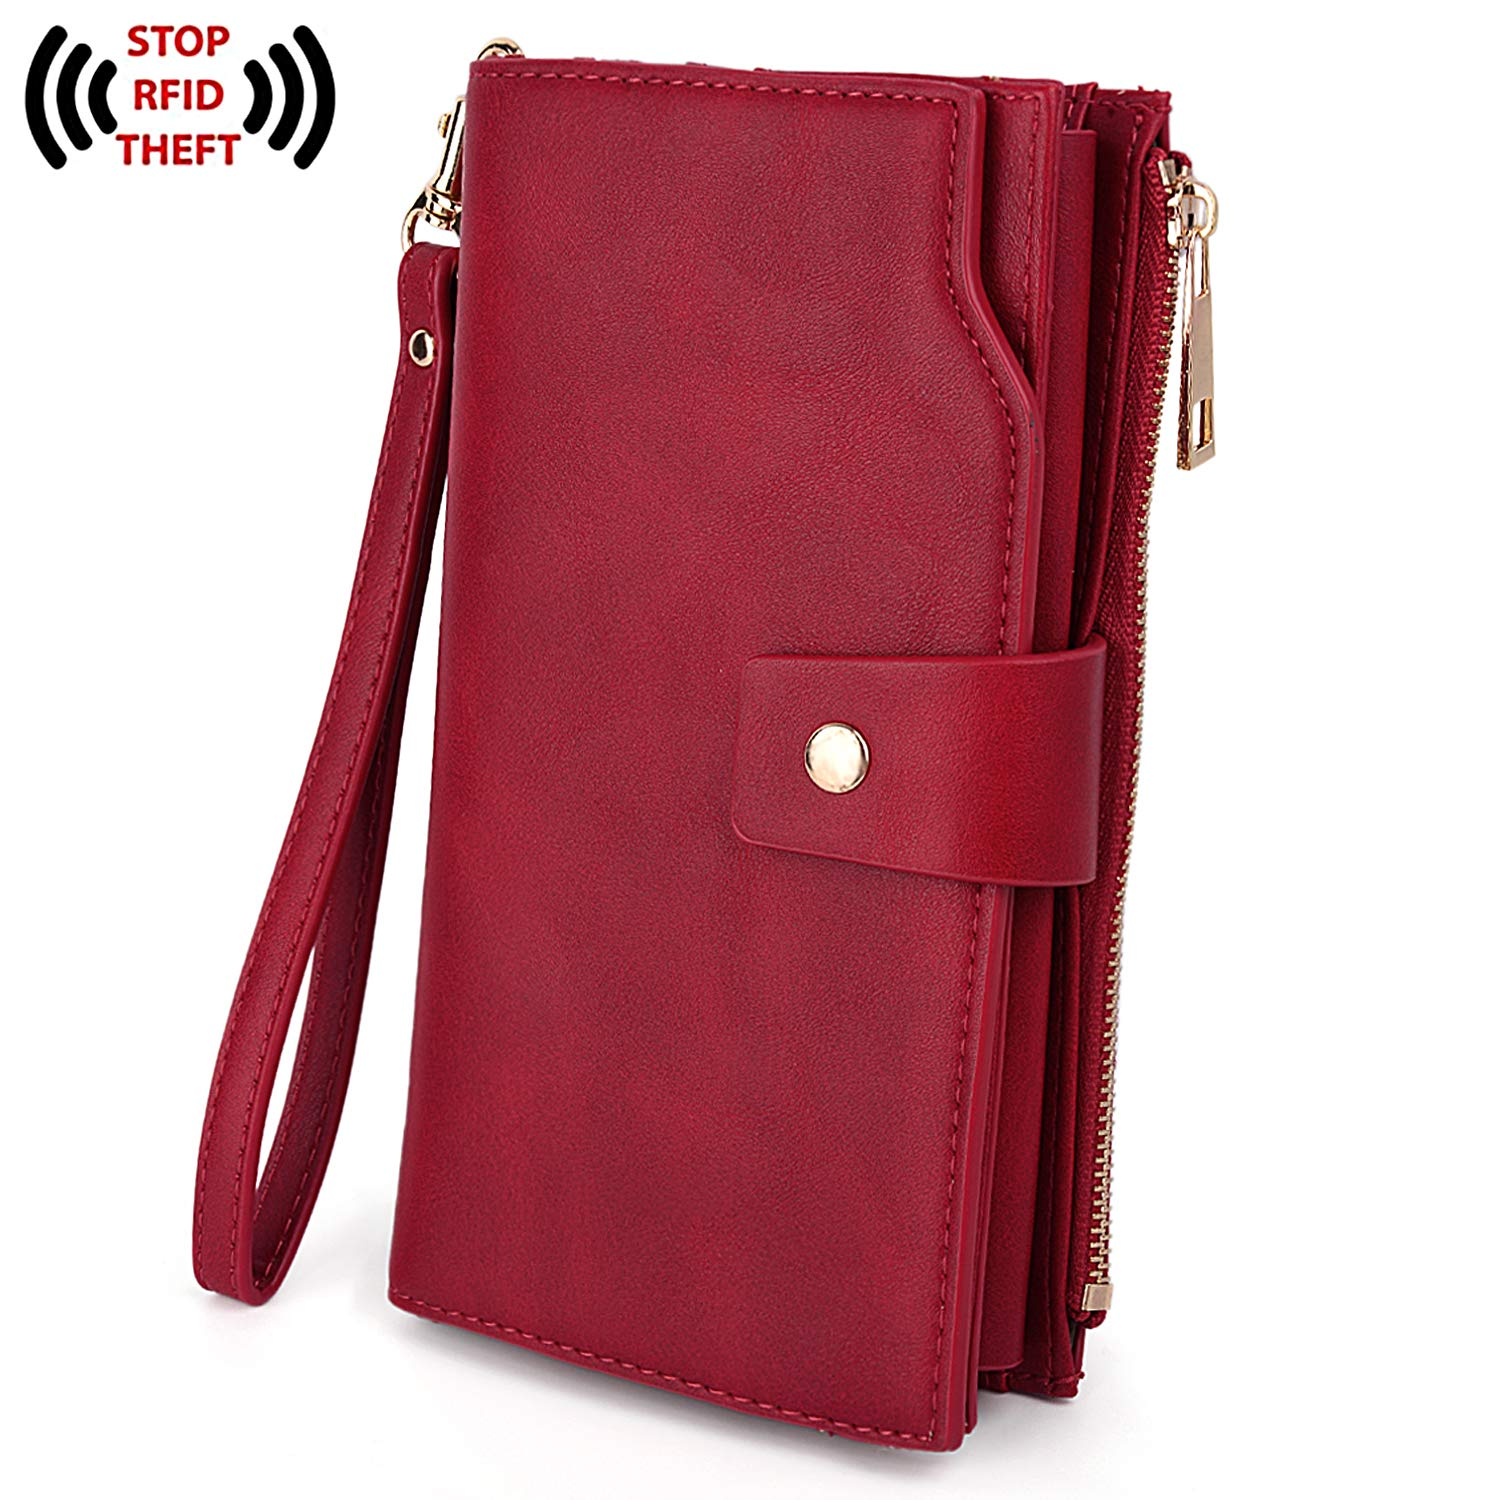 UTO Women's RFID Blocking Large Capacity PU Leather Clutch Wallet 21 Card Slots Holder Organizer Ladies Purse with Wristlet Red